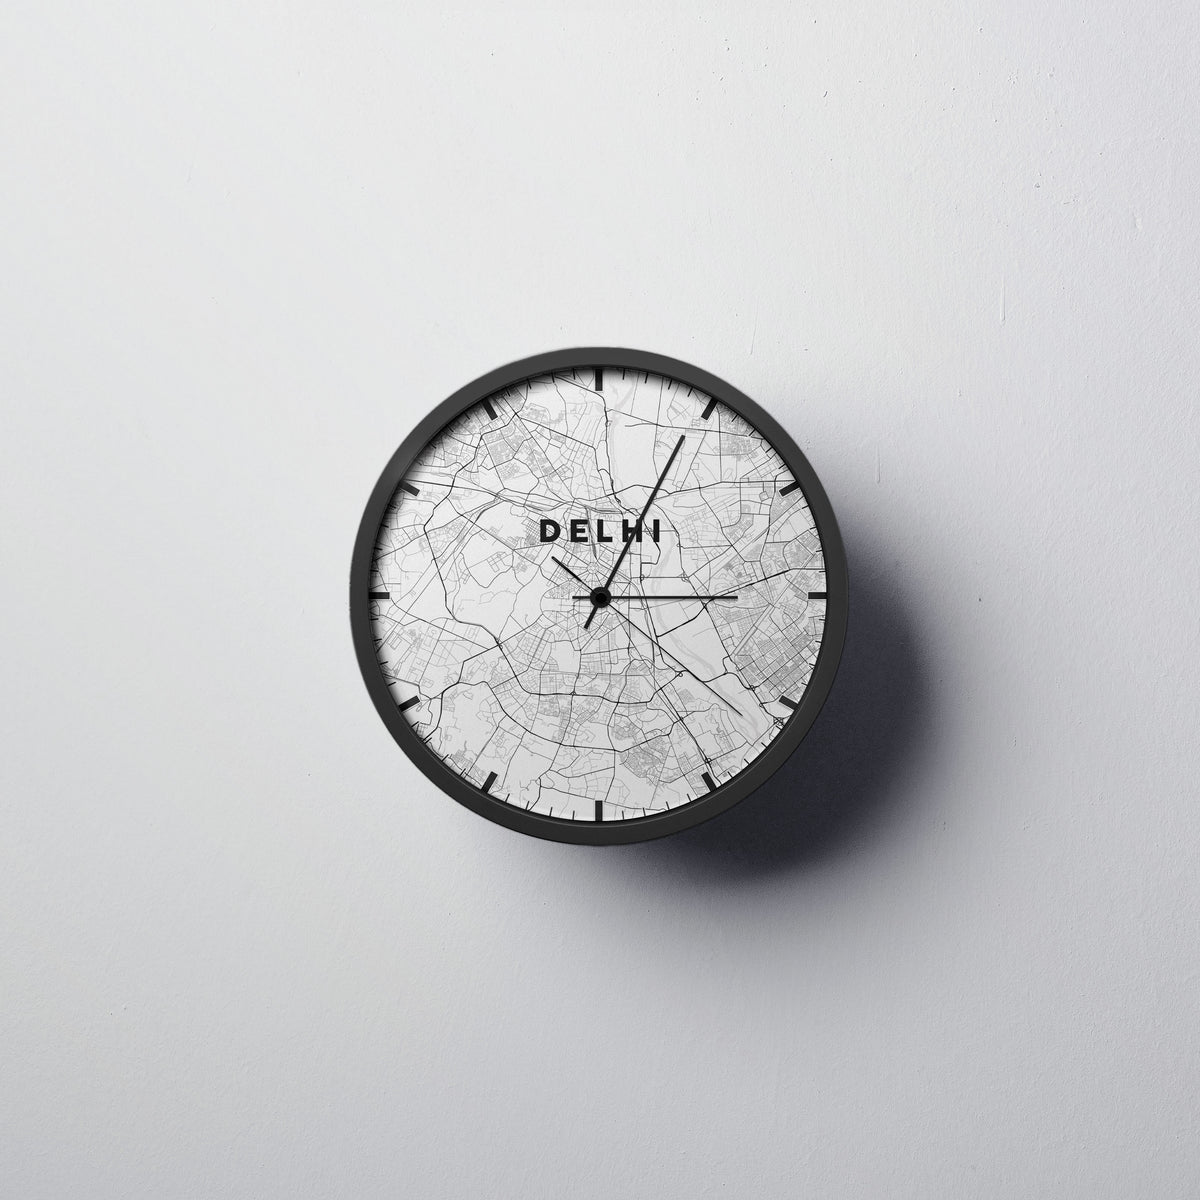 Delhi Wall Clock - Point Two Design